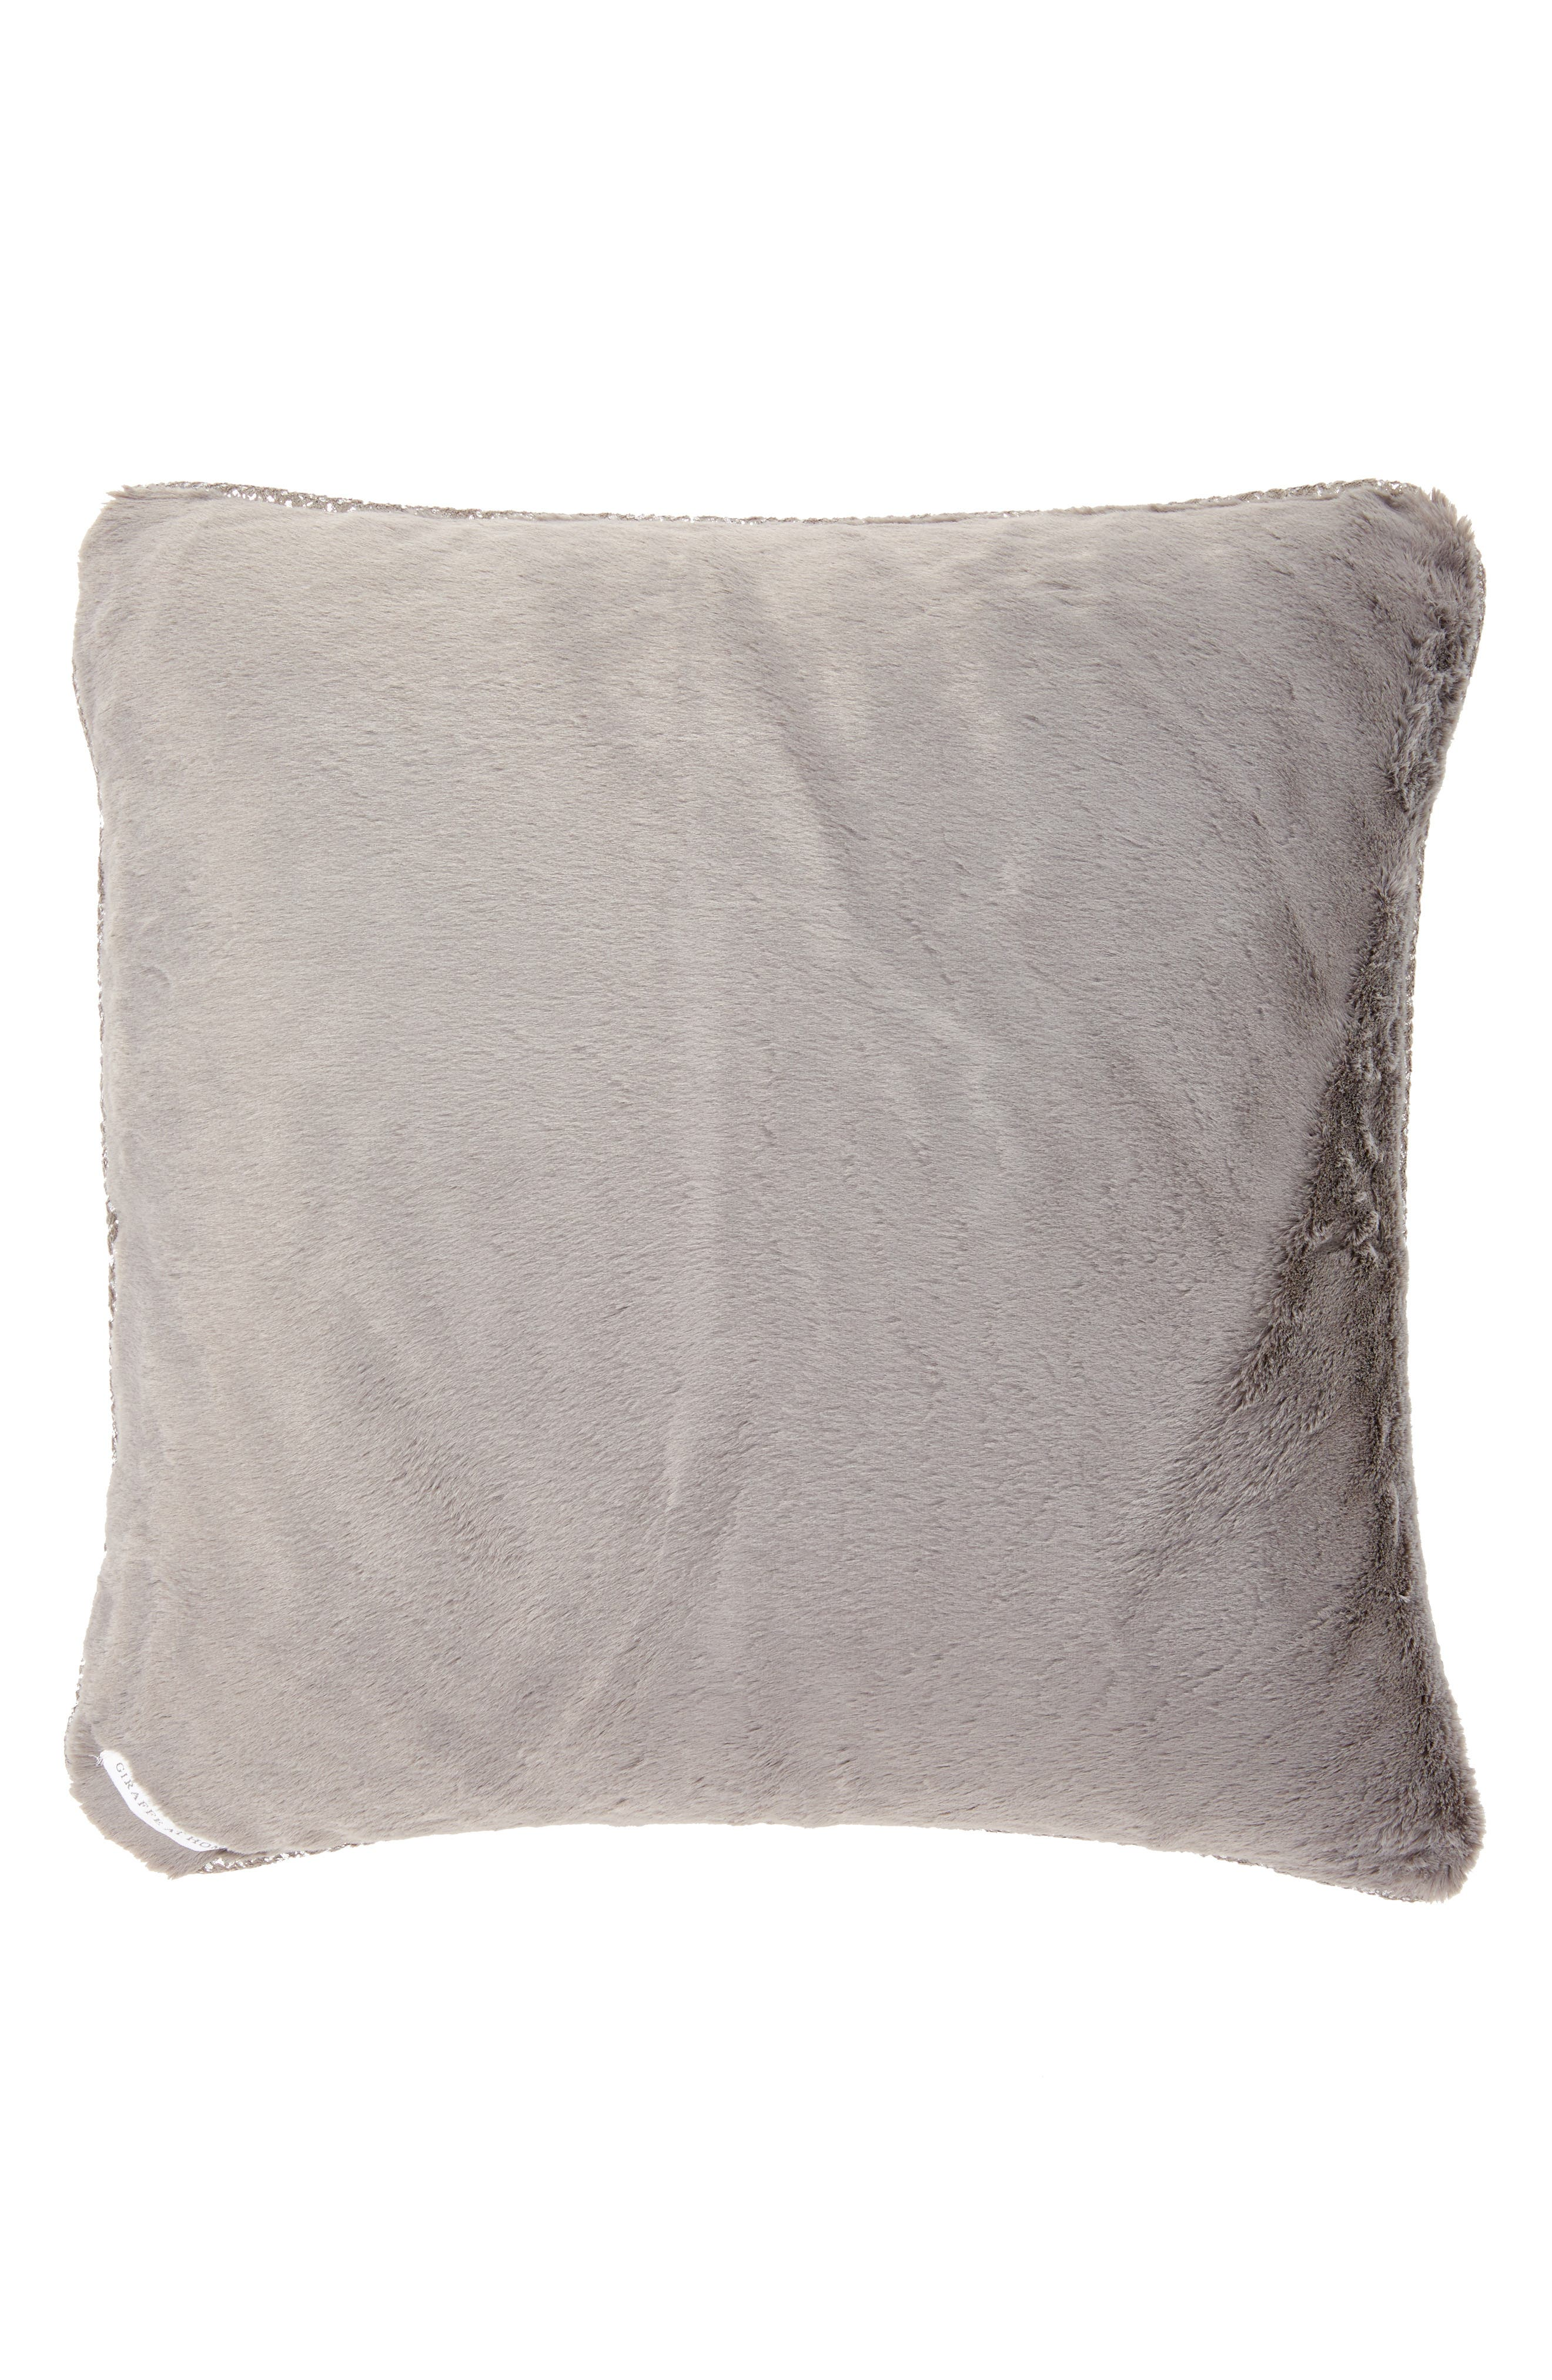 GIRAFFE AT HOME Luxe<sup>™</sup> Lustre Pillow, Main, color, 020